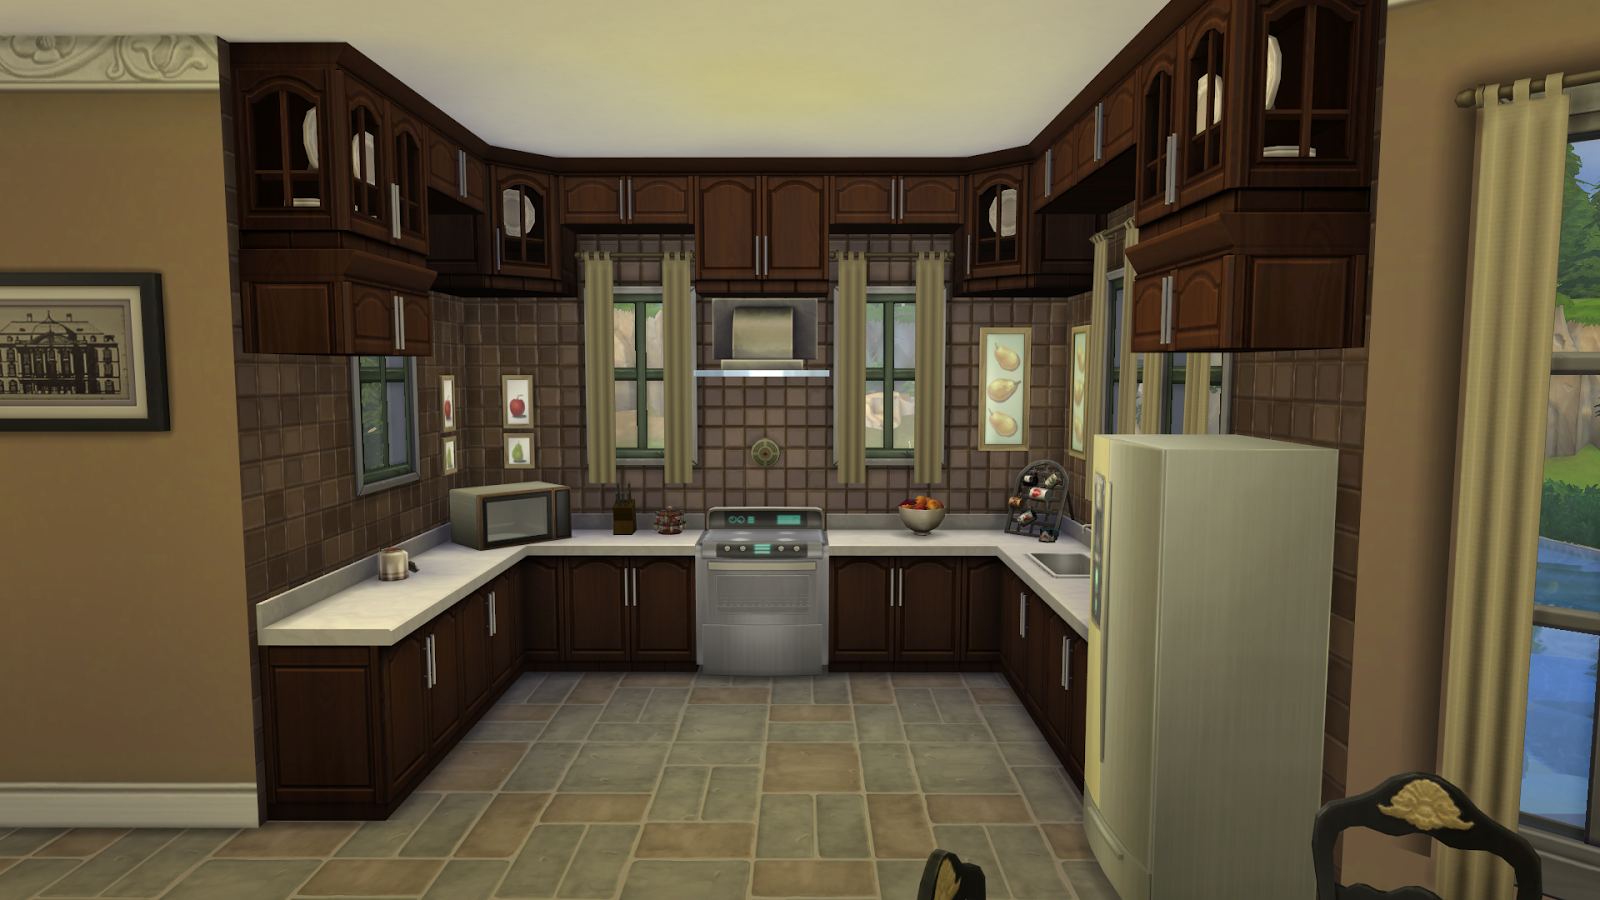 Lacey loves sims hennessey house for Sims 3 dining room ideas